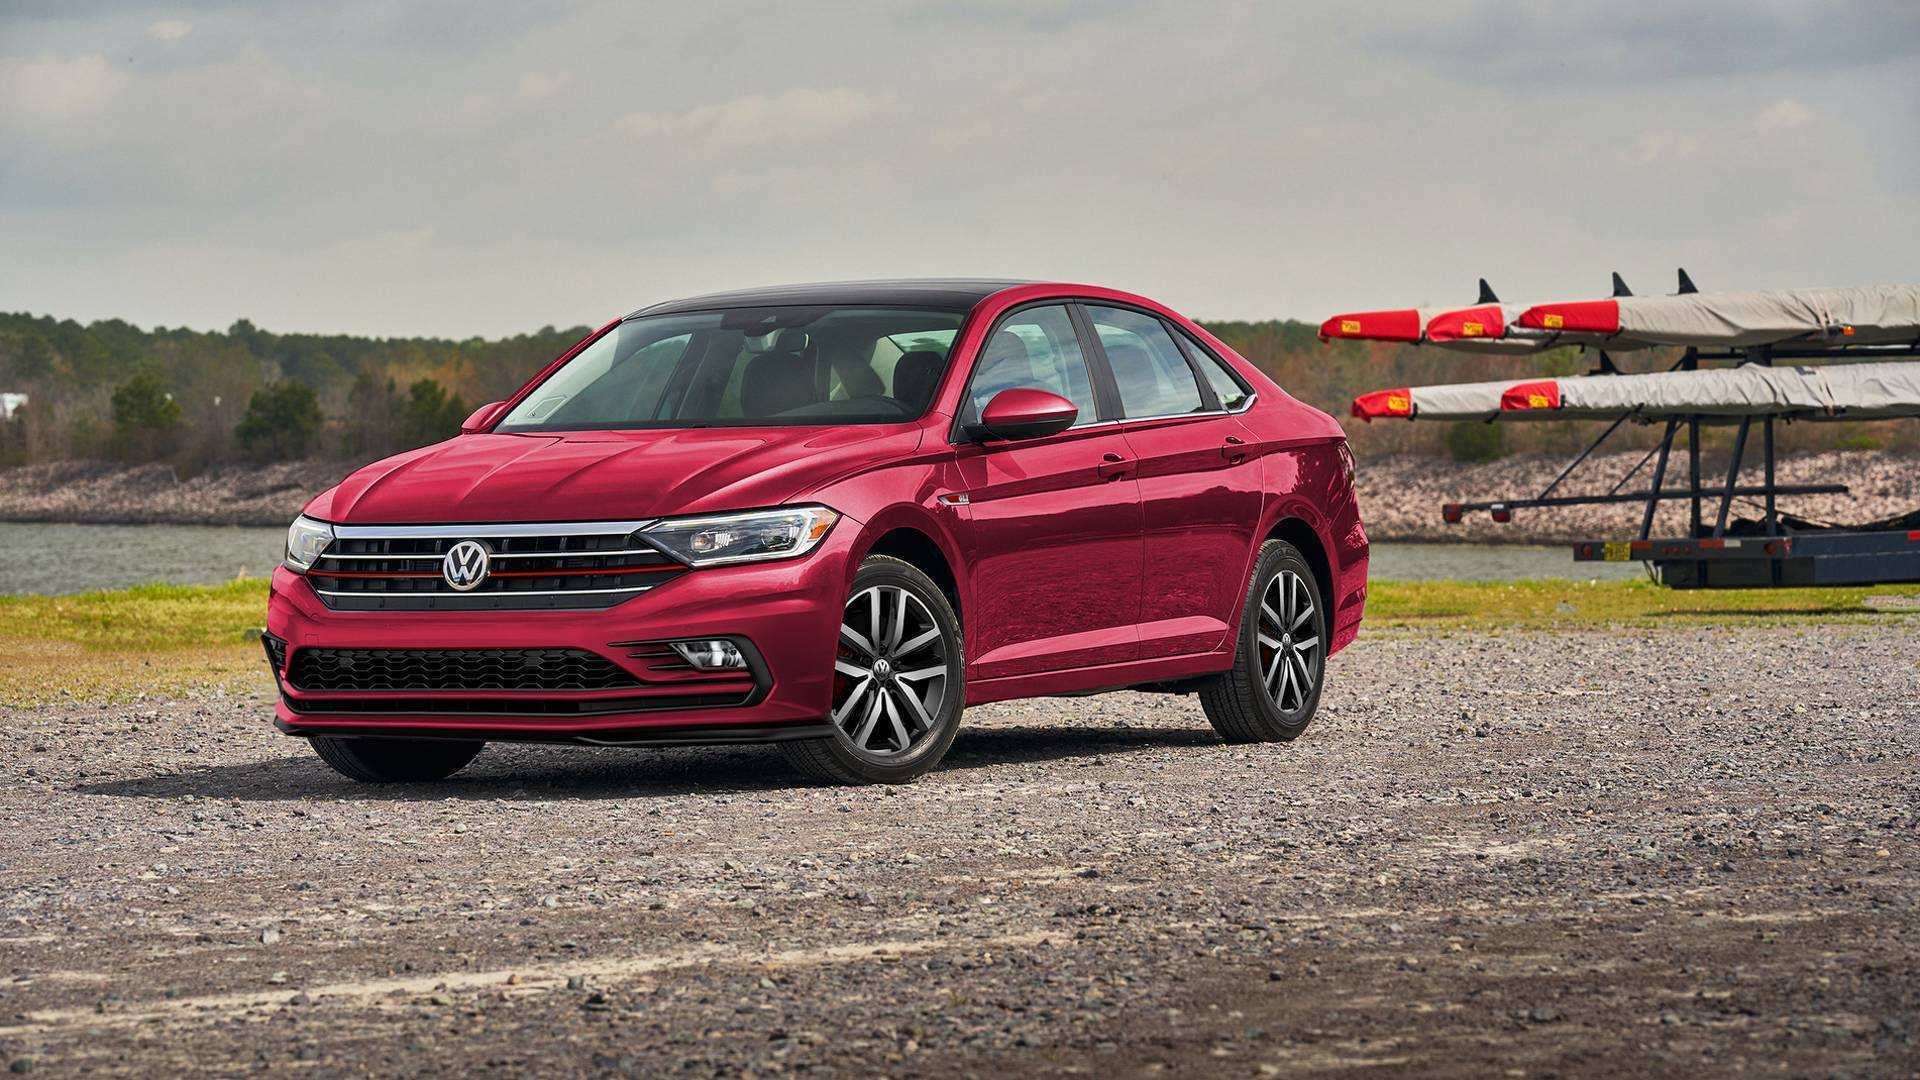 30 New 2020 Vw Jetta Review for 2020 Vw Jetta